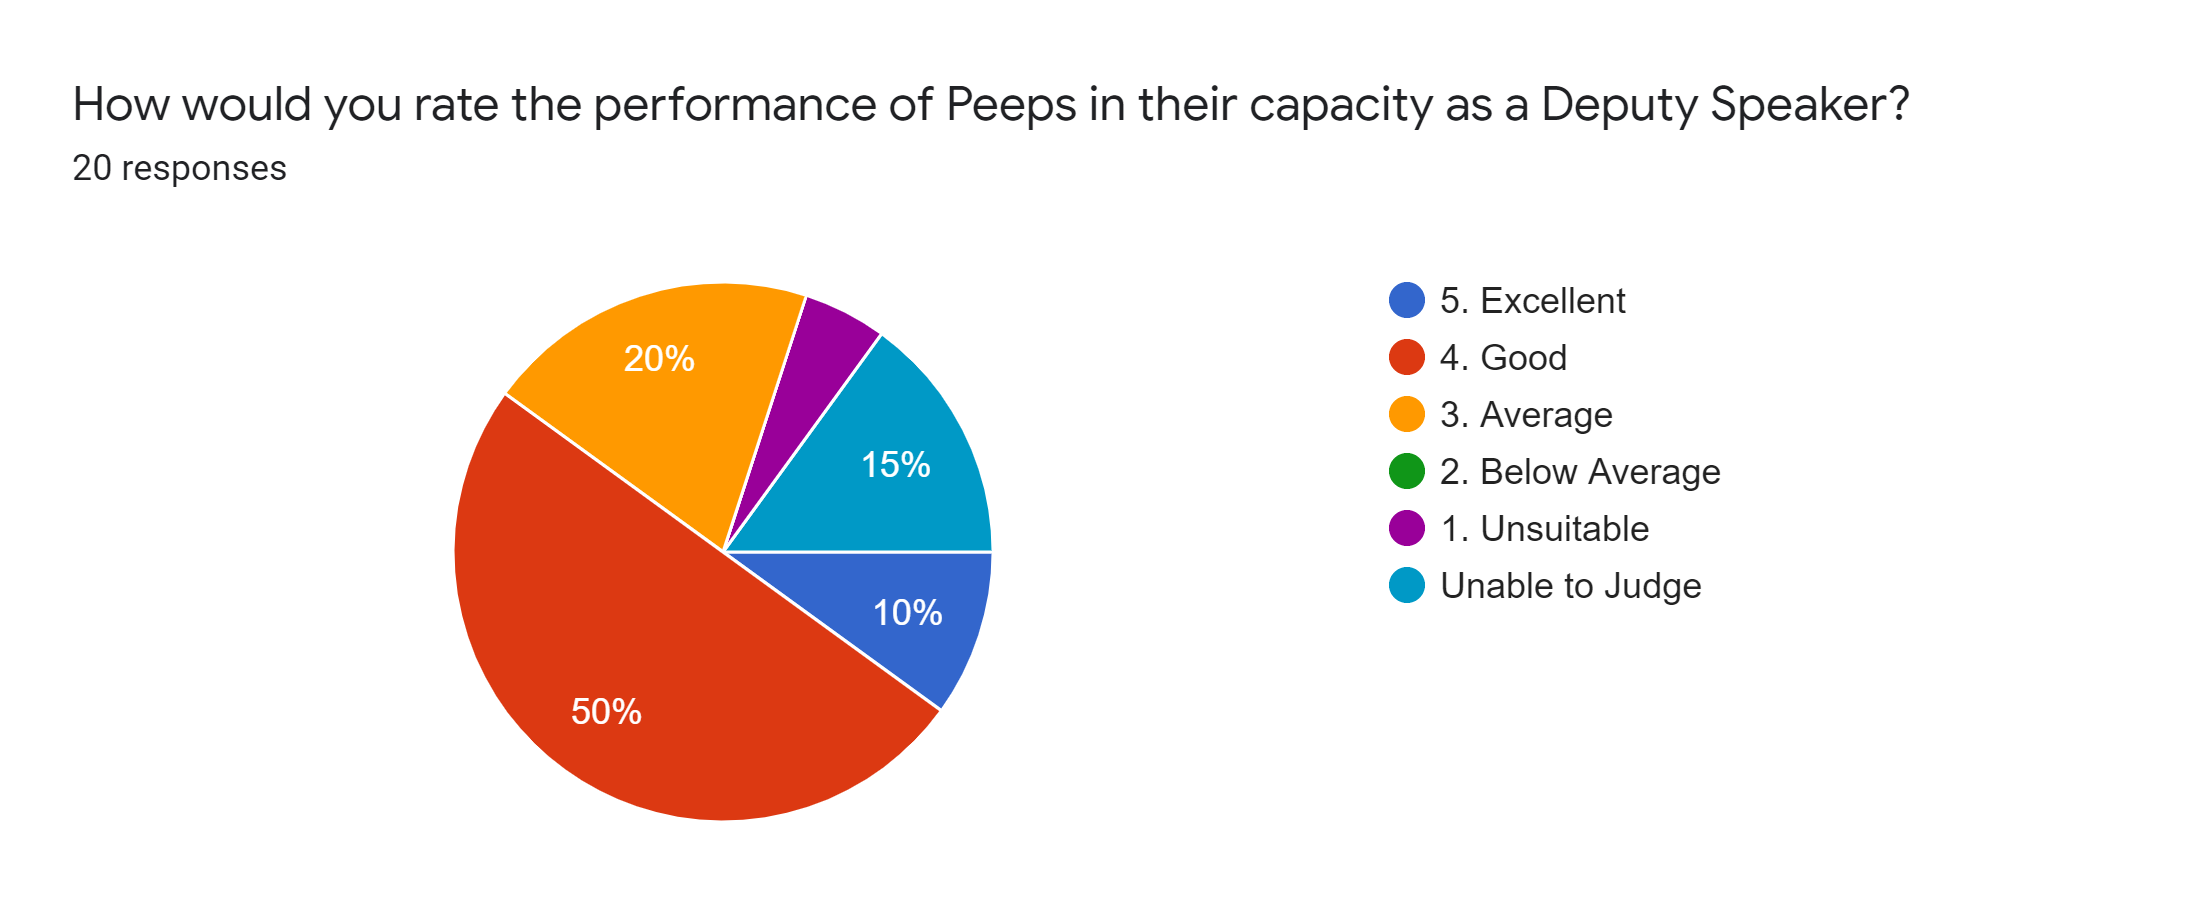 Forms response chart. Question title: How would you rate the performance of Peeps in their capacity as a Deputy Speaker?. Number of responses: 20 responses.